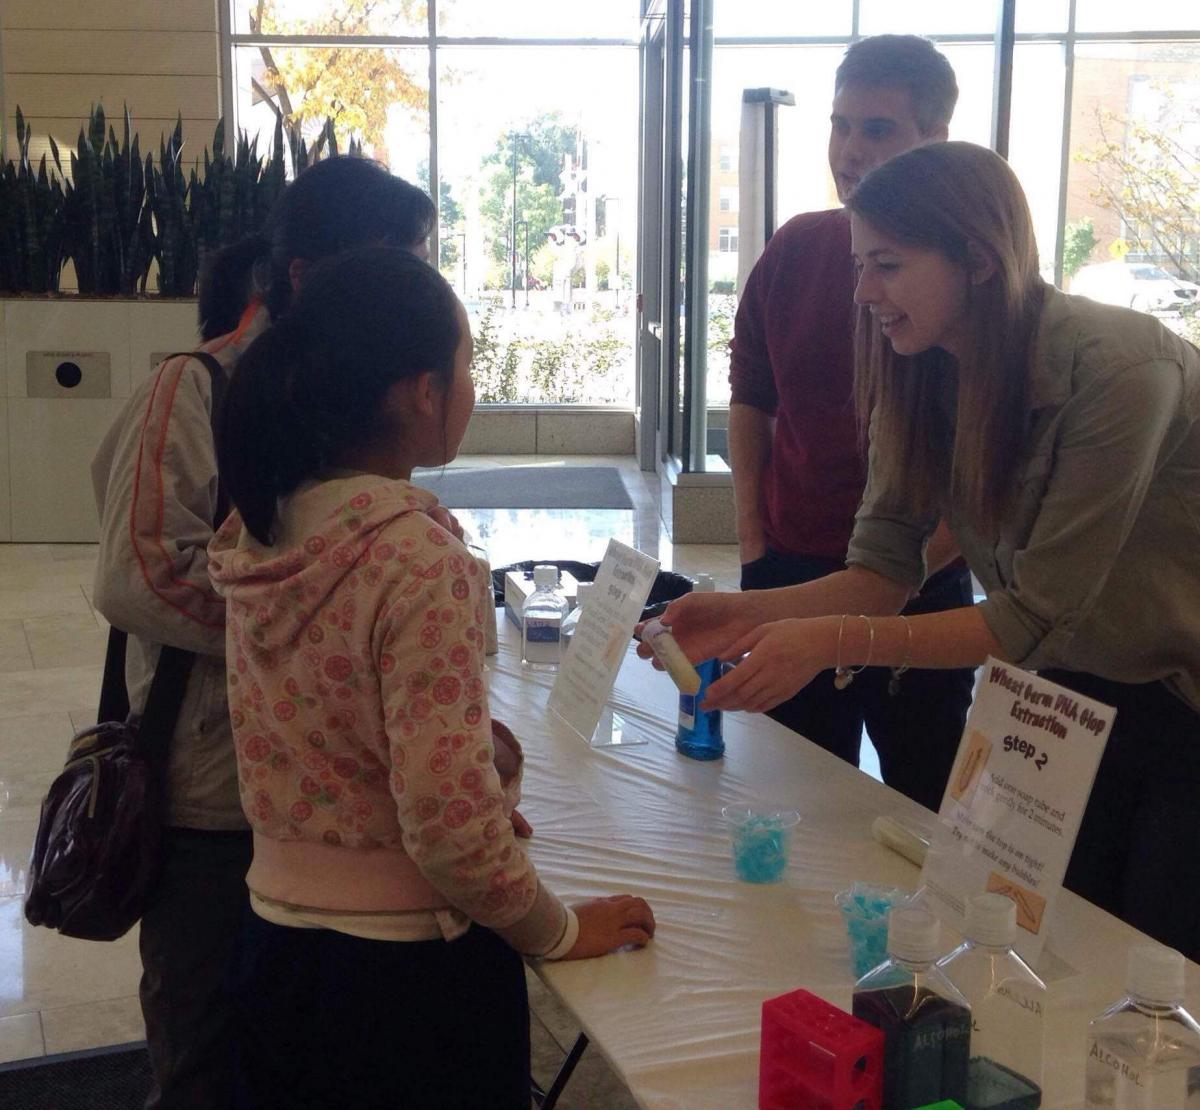 Undergrads in their outreach event at the Wisconsin Institutes for Discovery building.